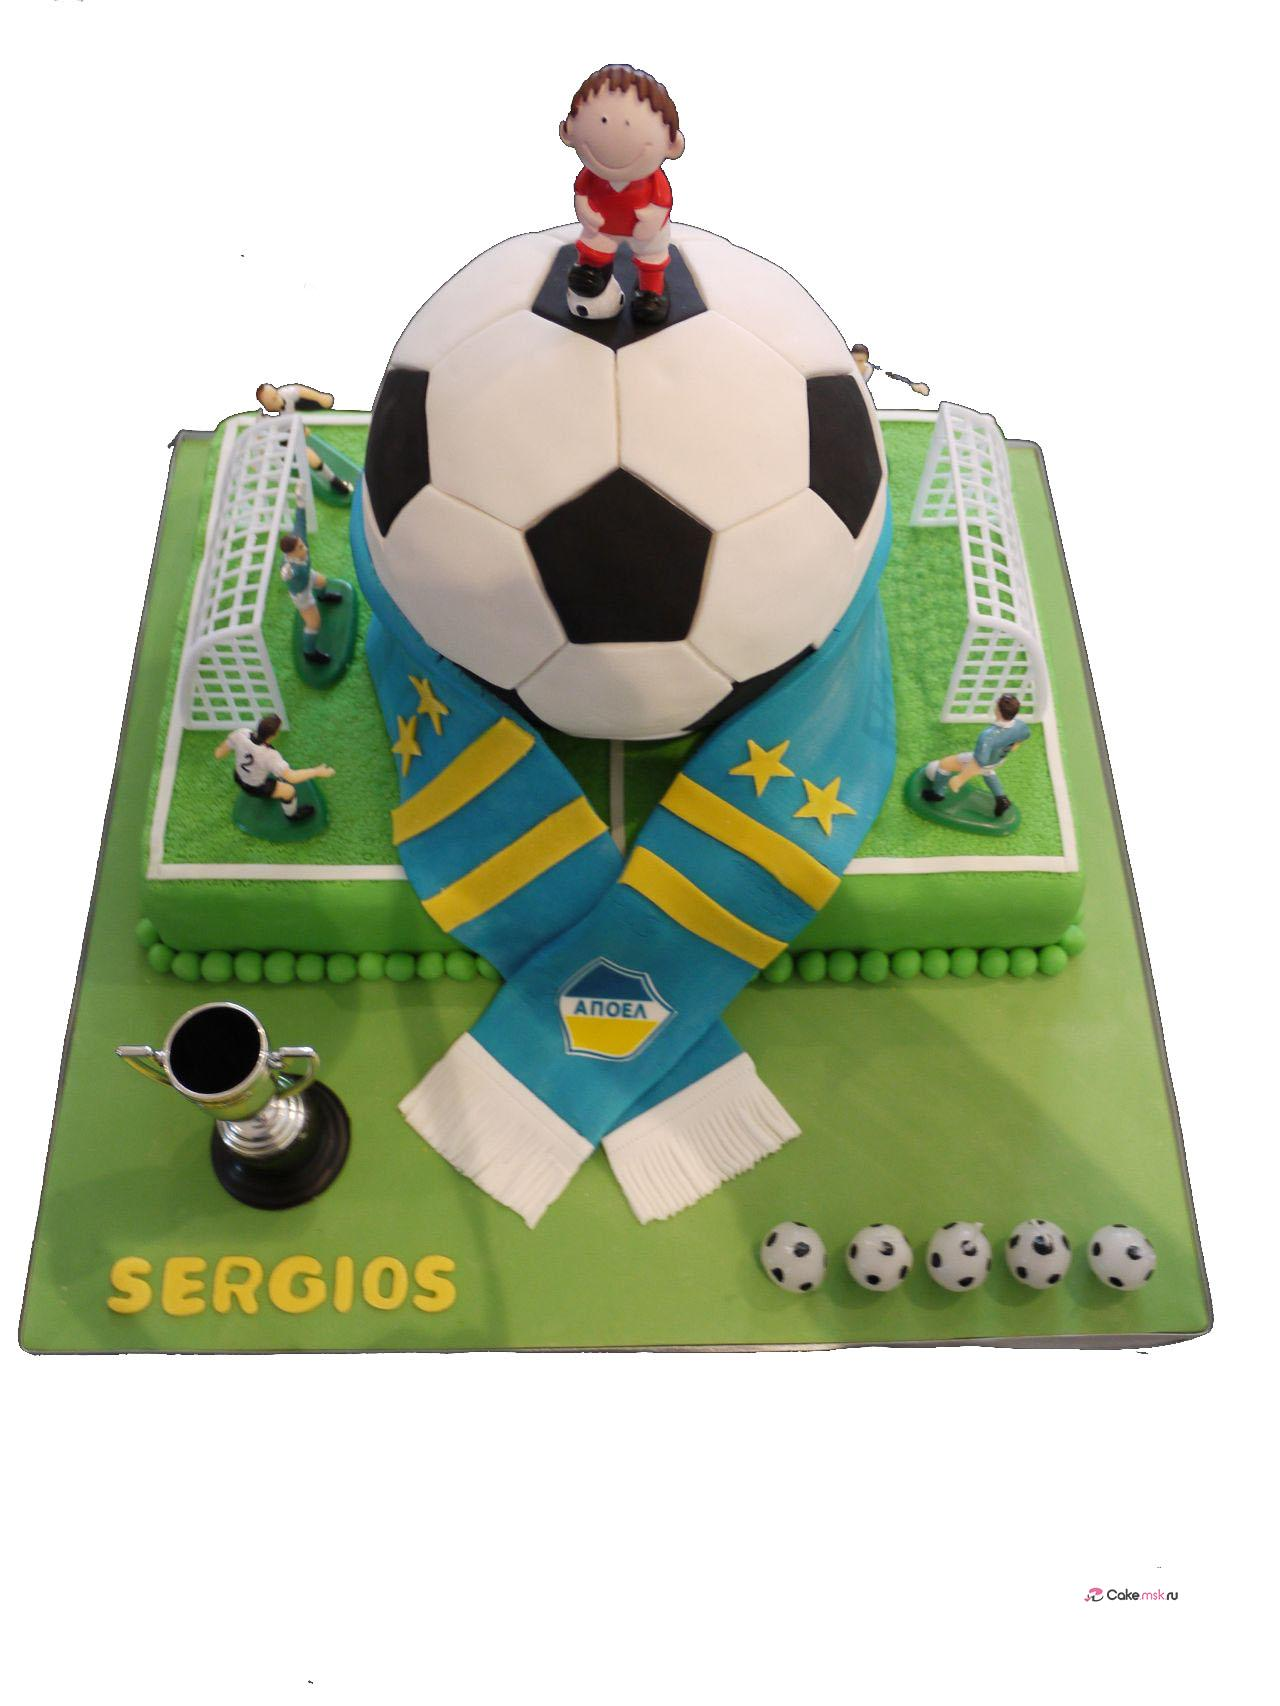 5-year-old-boy-birthday-cake-5541c751dcf76